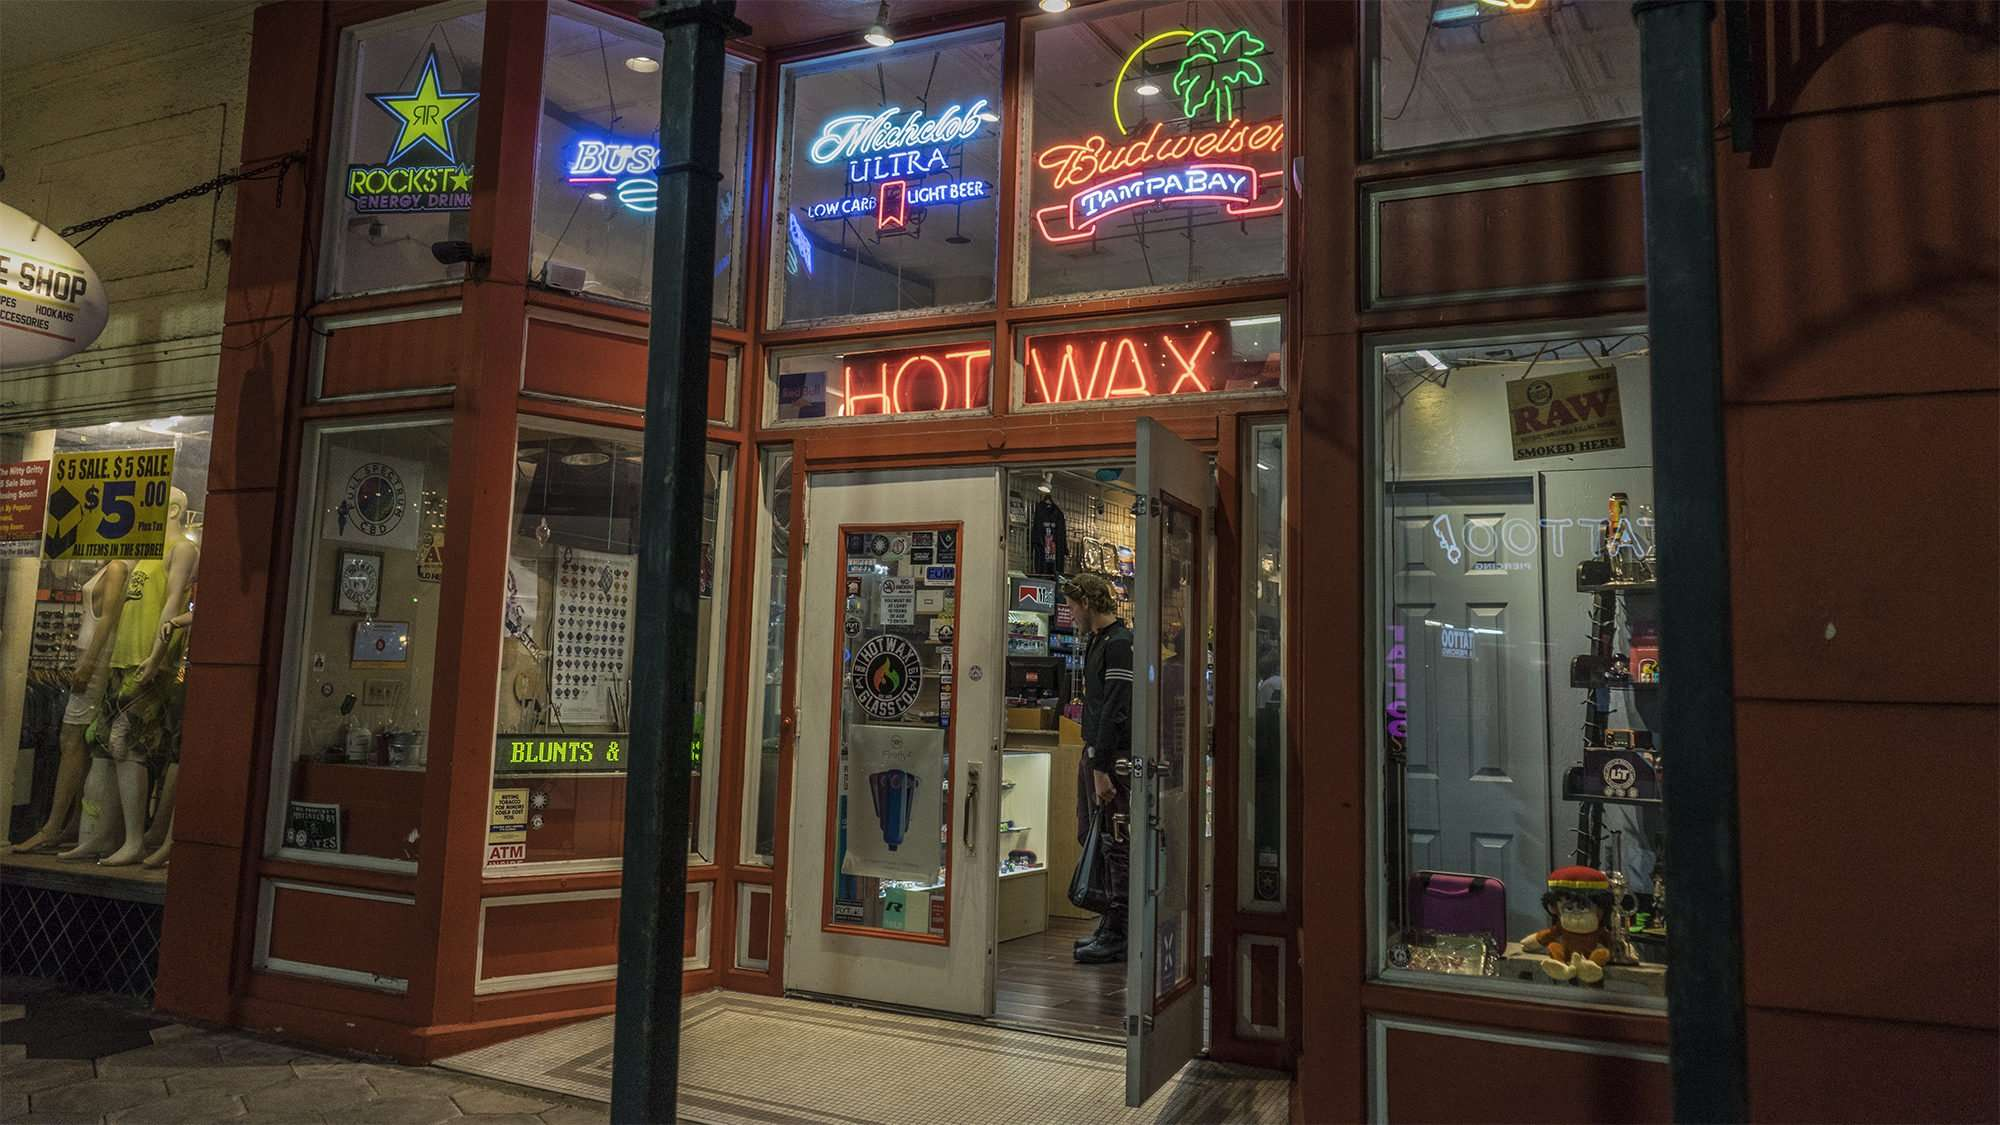 Feb 5, 2017 - Hot Wax Glass Co next to Carne Chophouse, 7th Ave, Ybor City Tampa, FL/photonews247.com